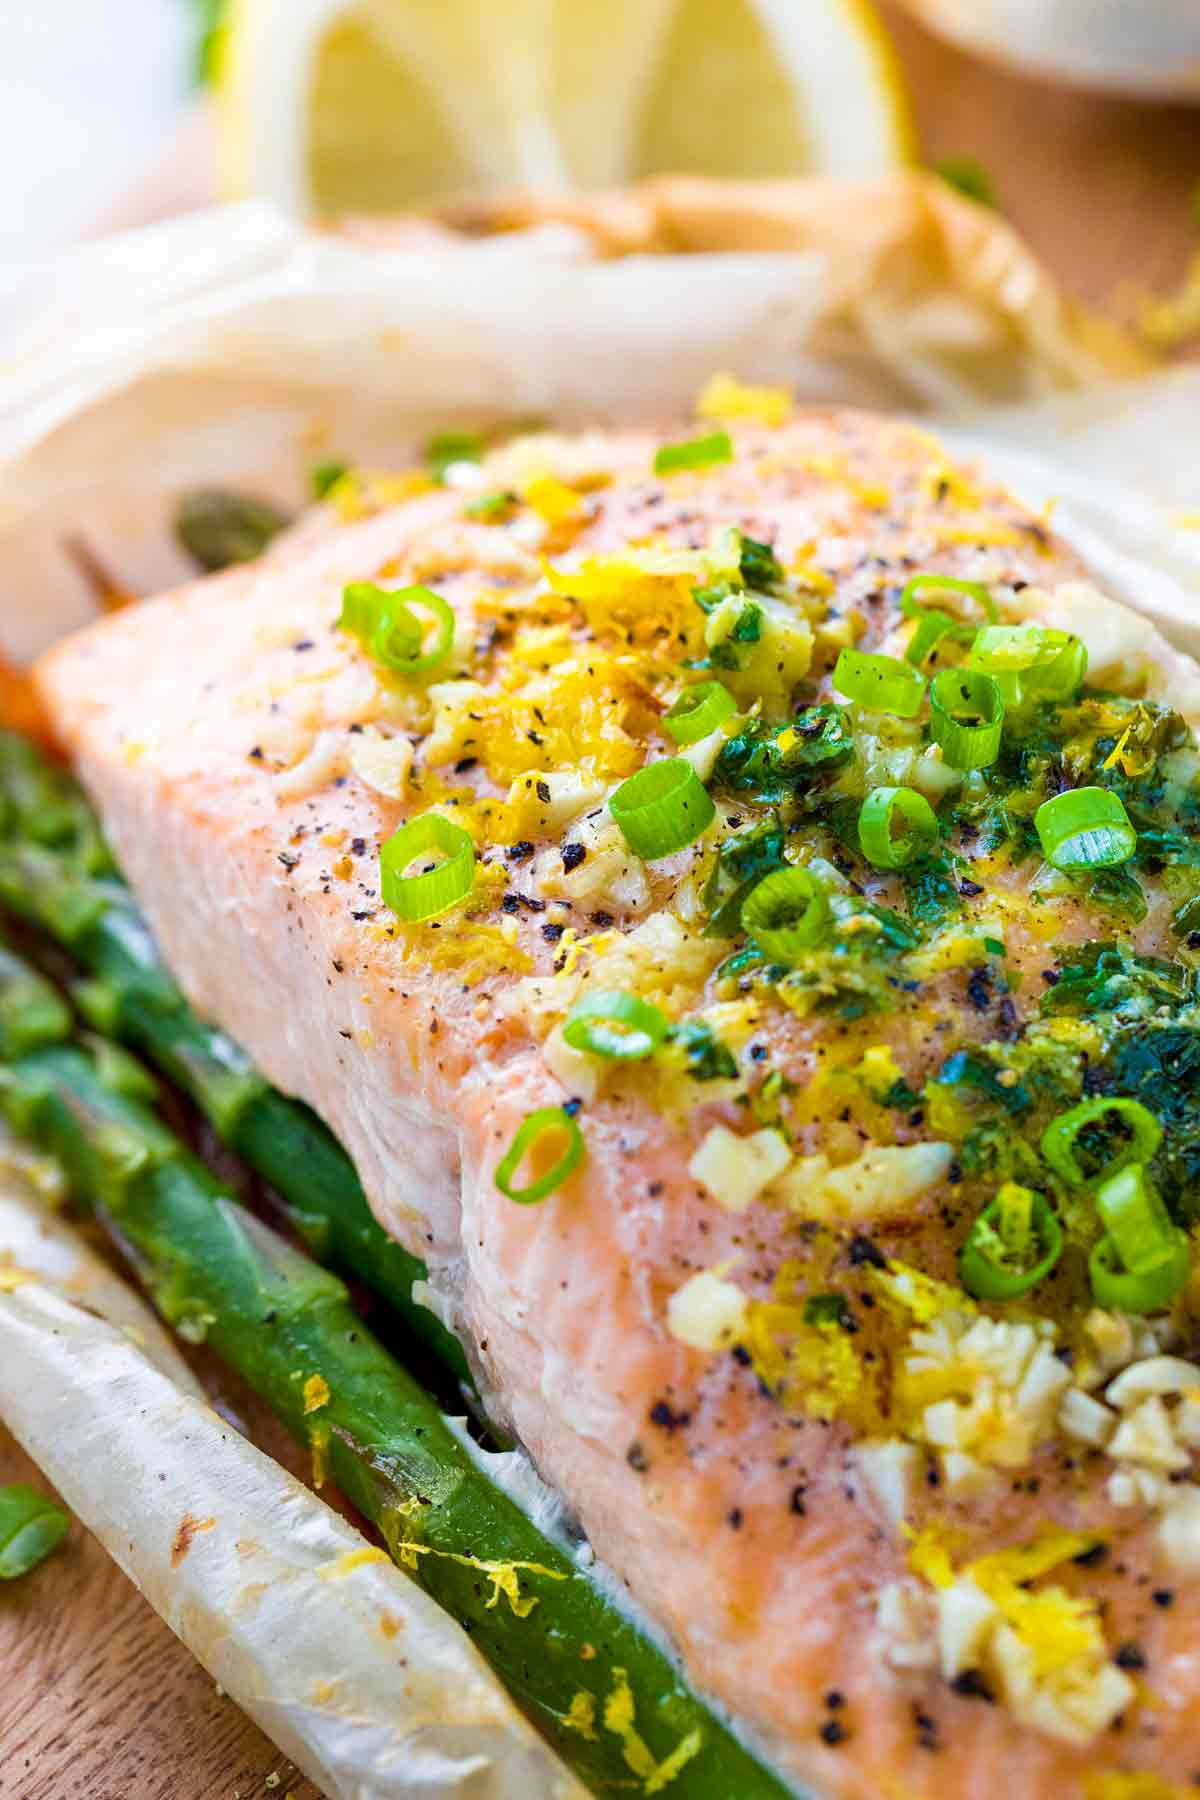 The melted compound butter seasons the fish and vegetables